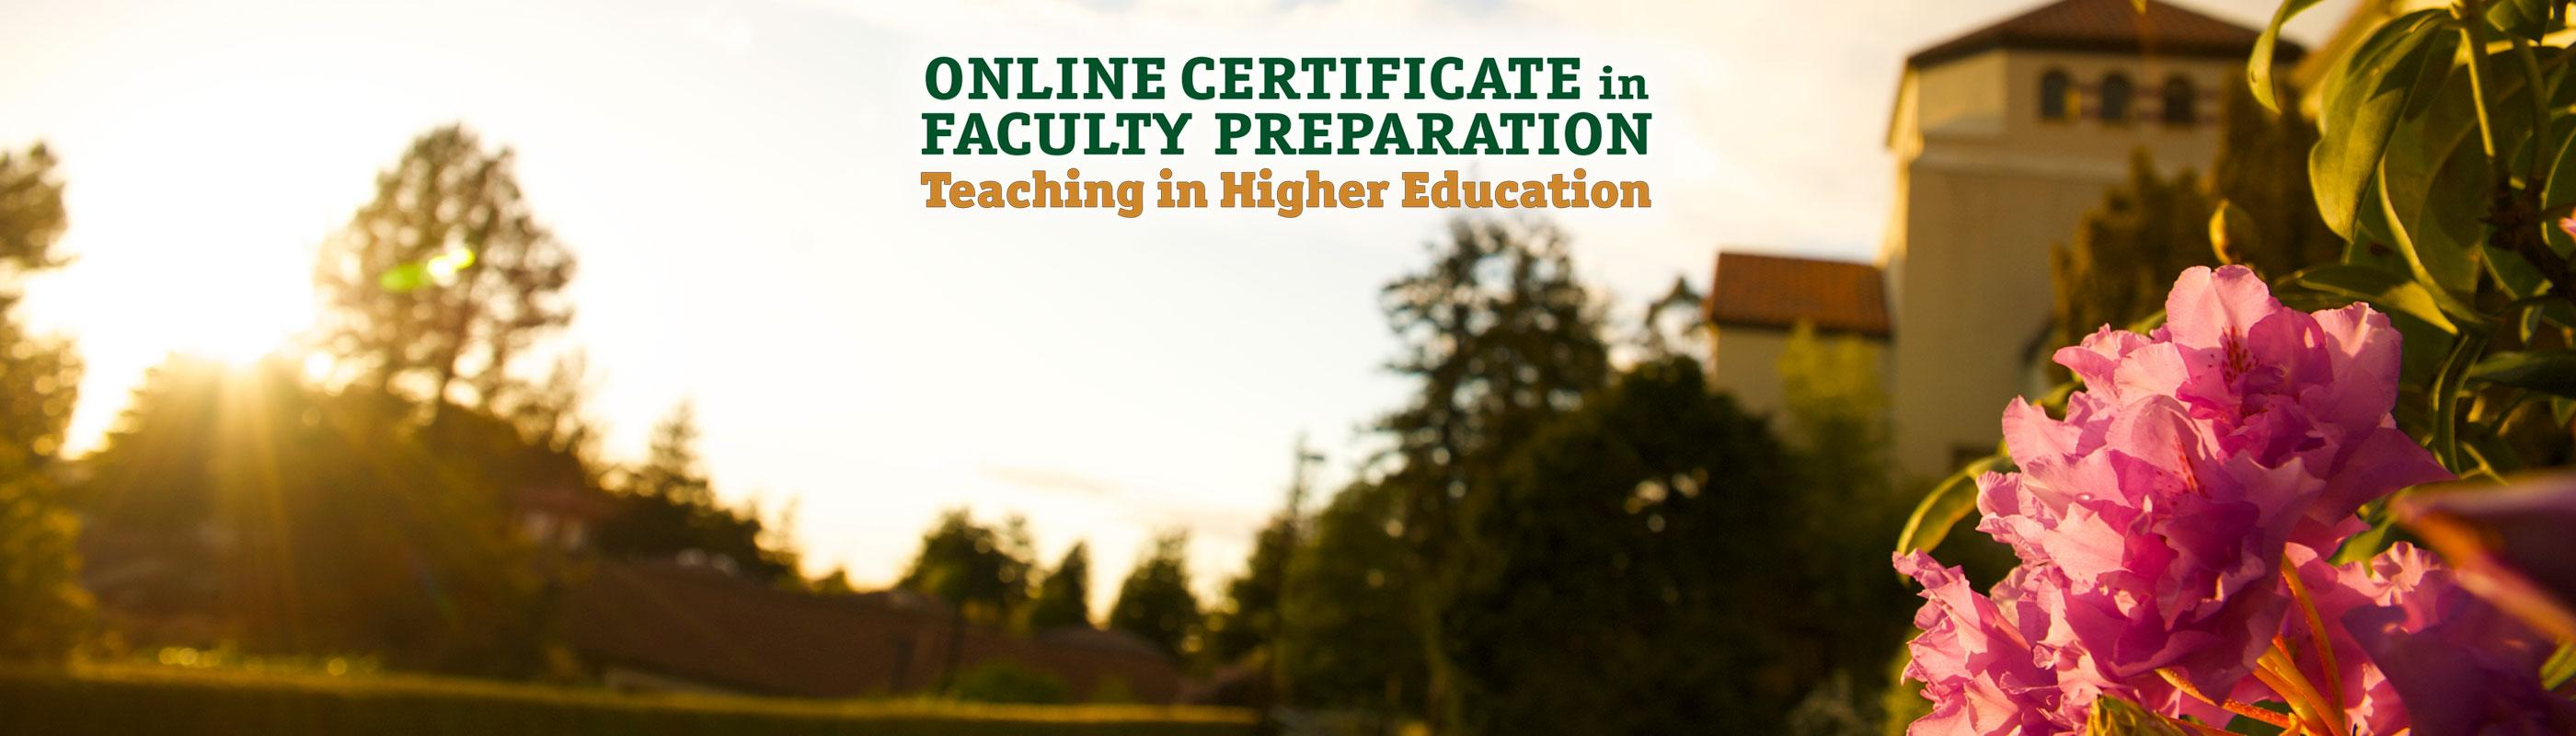 The Road To Higher Education With >> Faculty Preparation Teaching In Higher Education Online Certificate